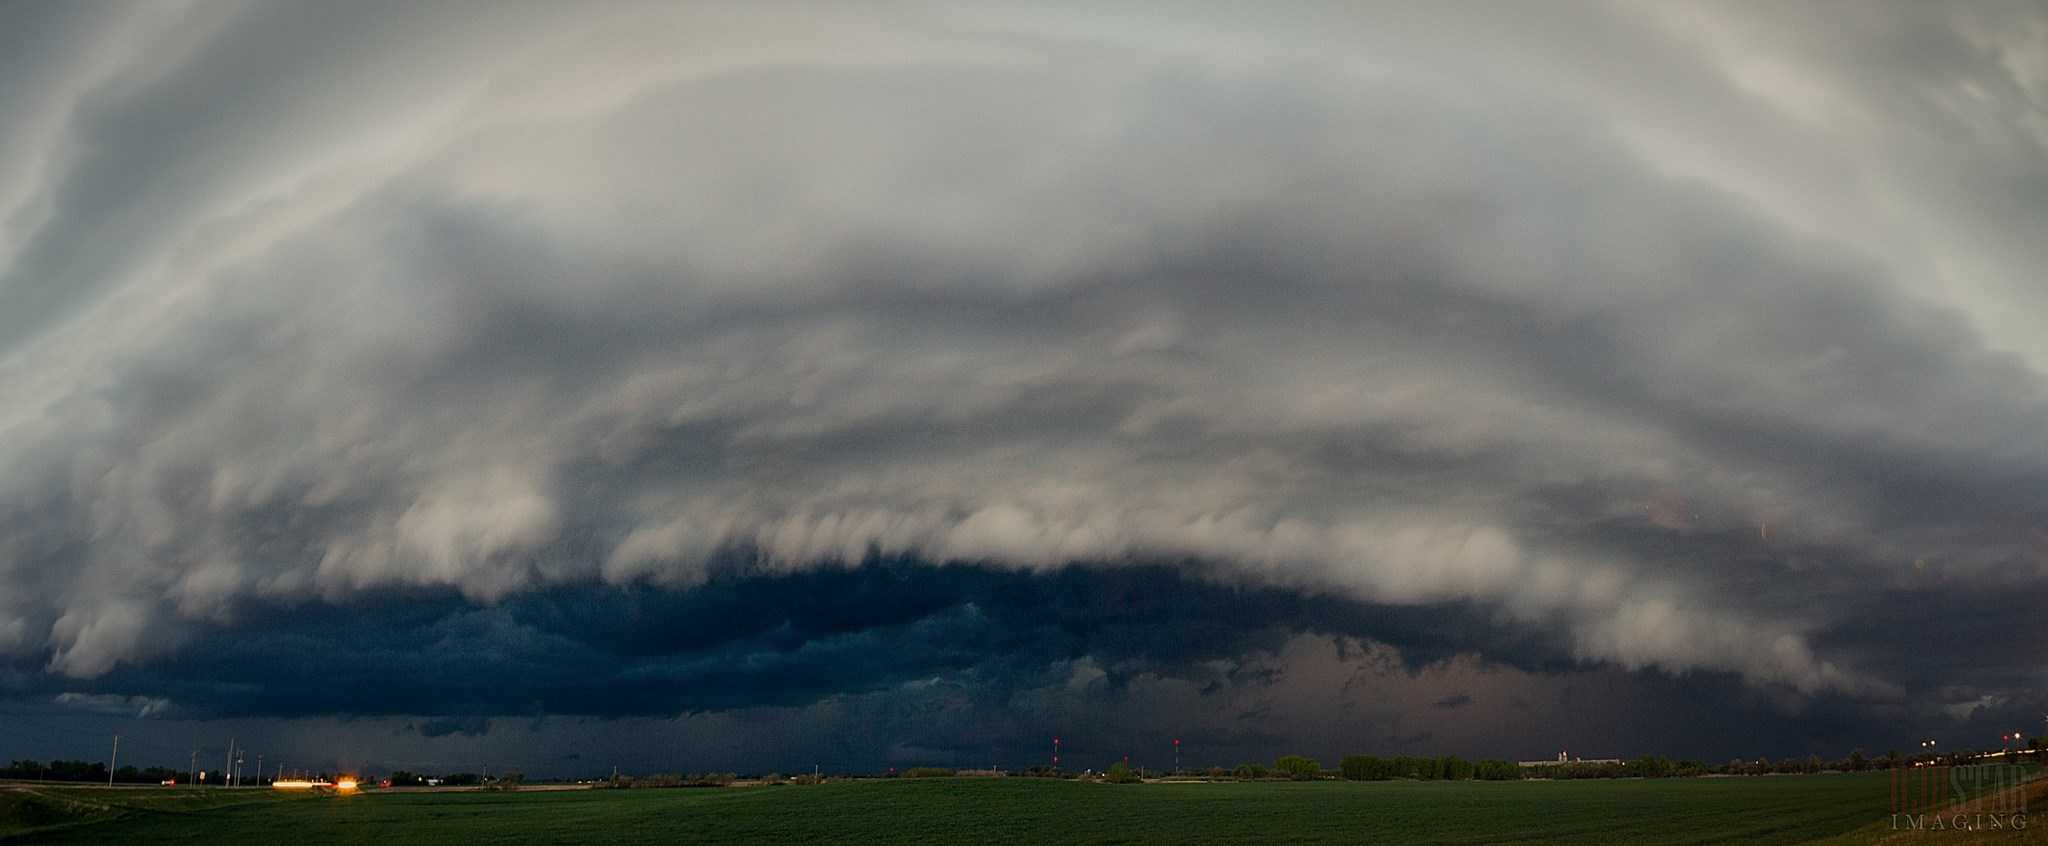 3 image pano of a severe warned cell over Salina, Kansas on April 24th, 2015